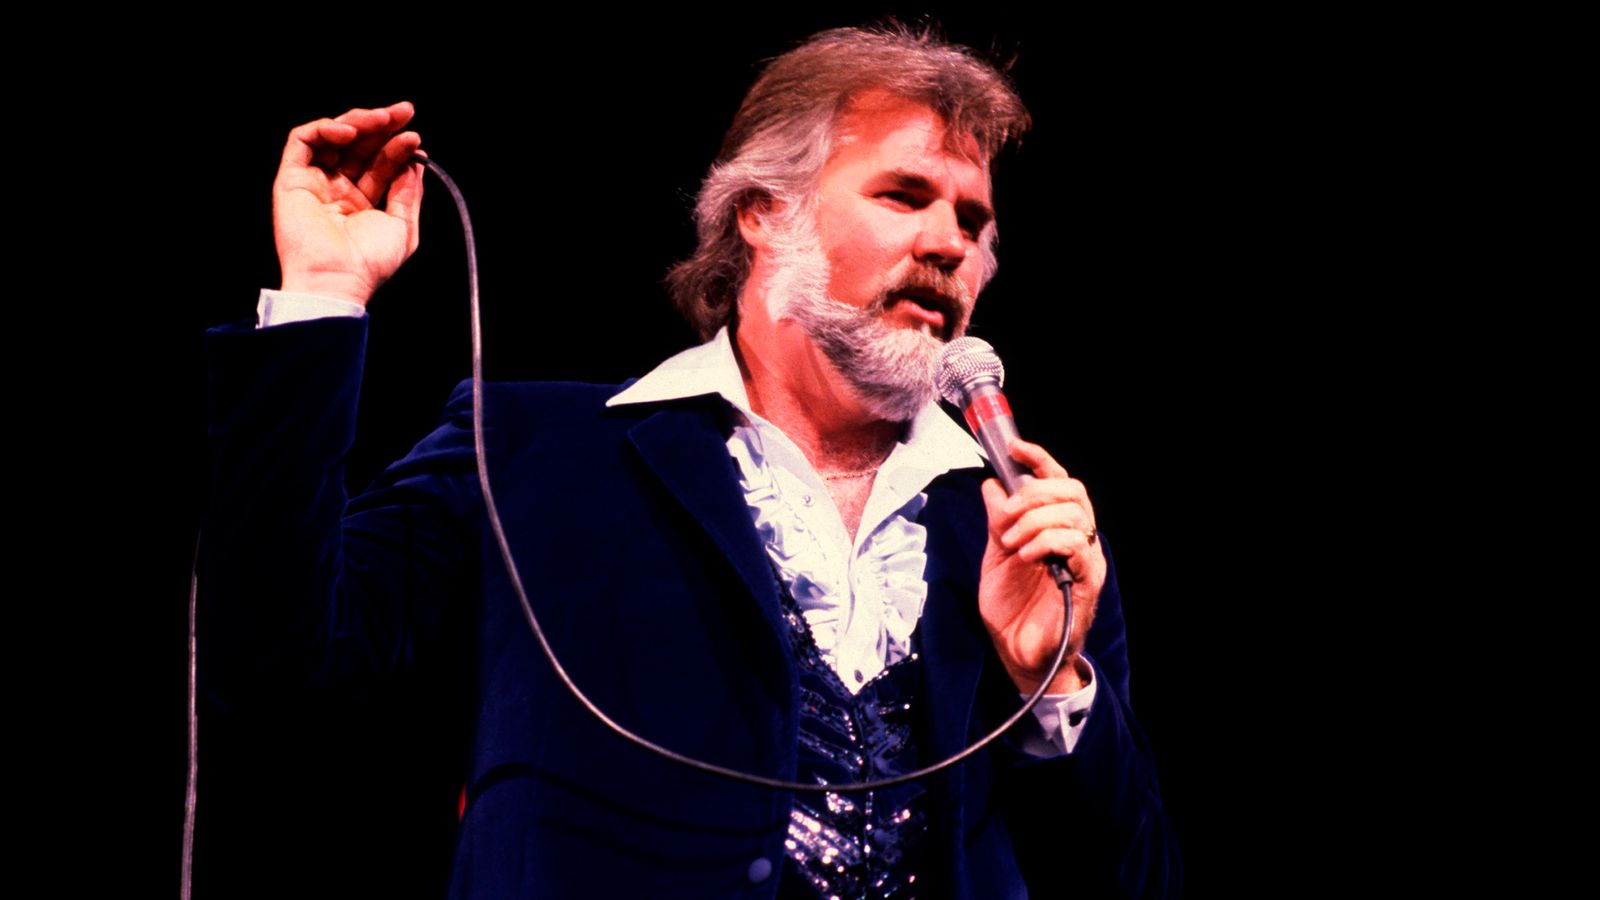 Country music legend Kenny Rogers dies aged 81 - EpicNews